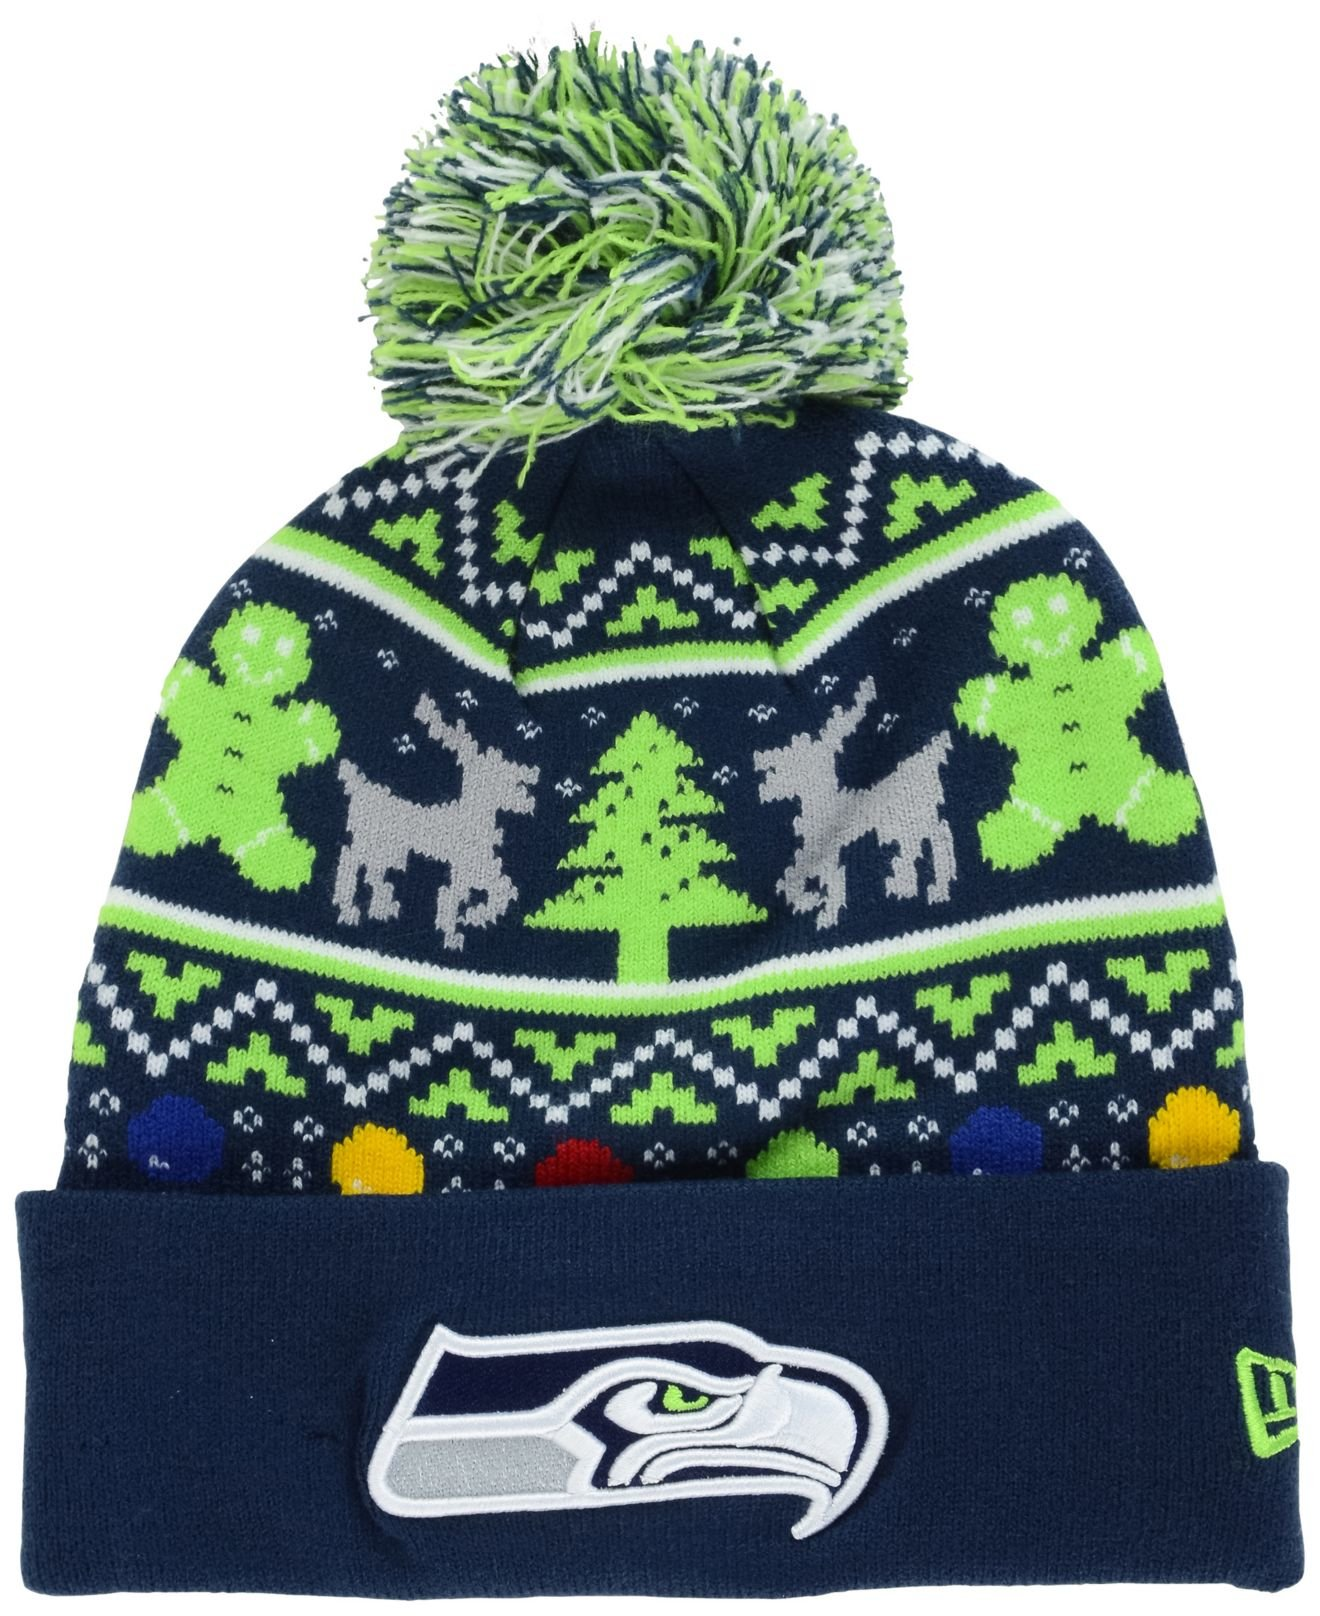 gallery - Seahawks Christmas Sweater